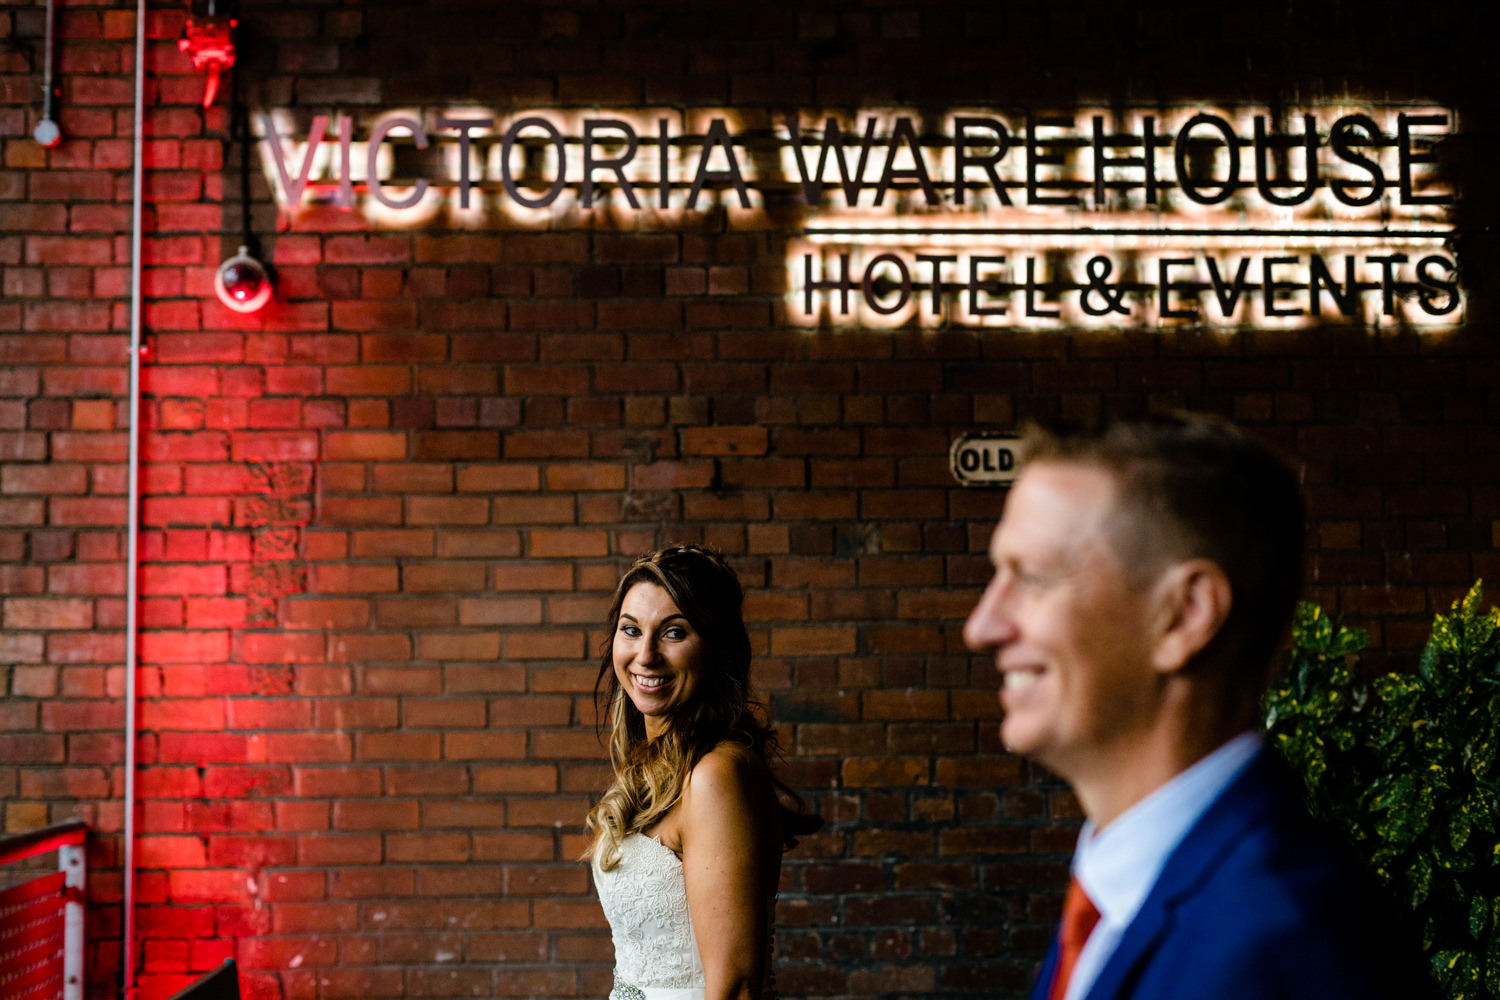 wedding photographer Victoria Warehouse, a bride looks at her groom under the neon sign